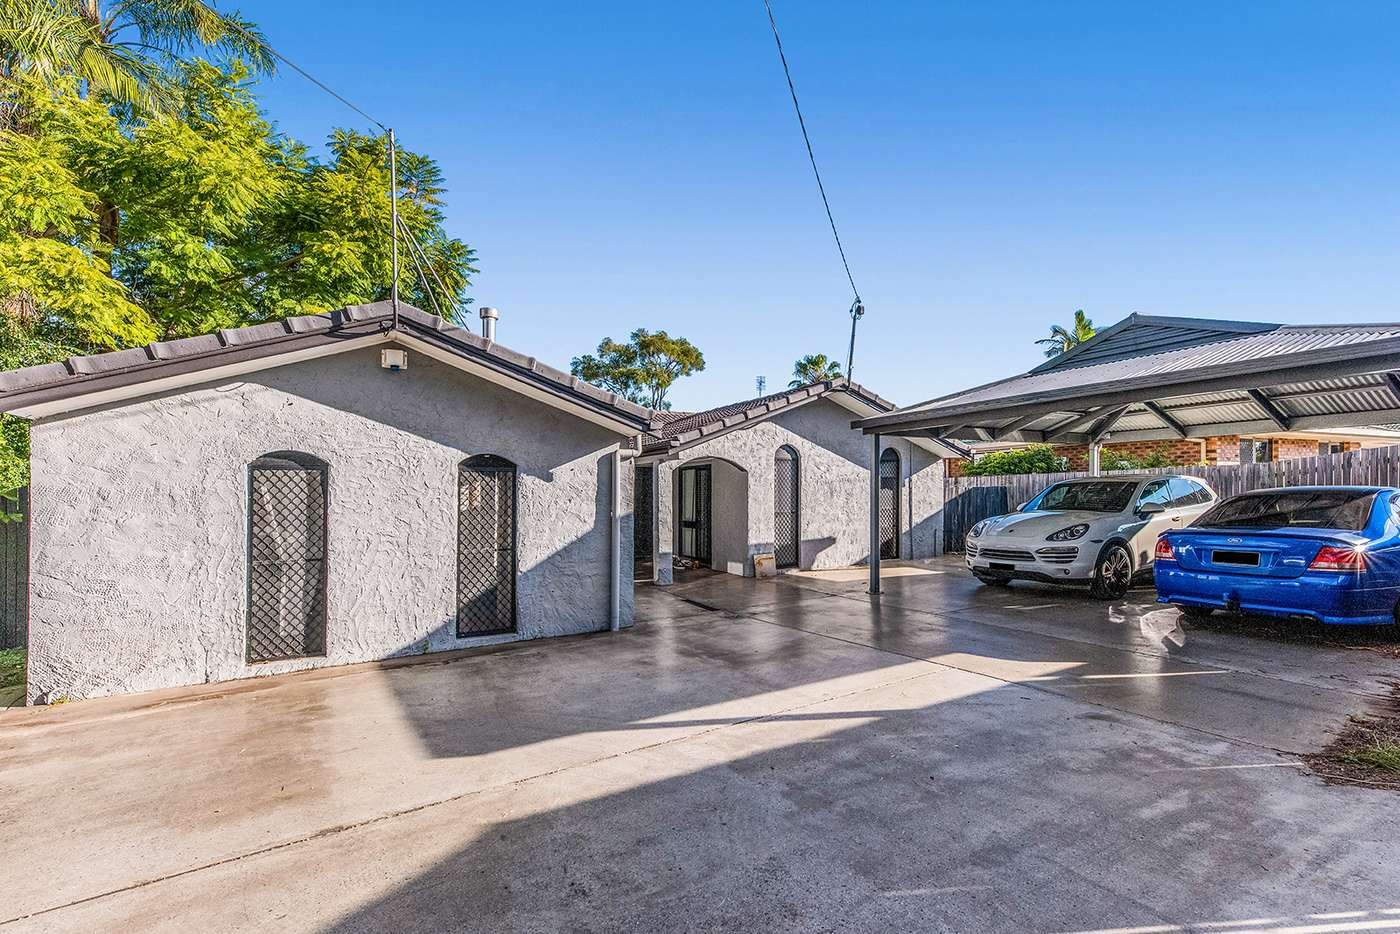 Main view of Homely house listing, 8 Sweetgum St, Hillcrest QLD 4118